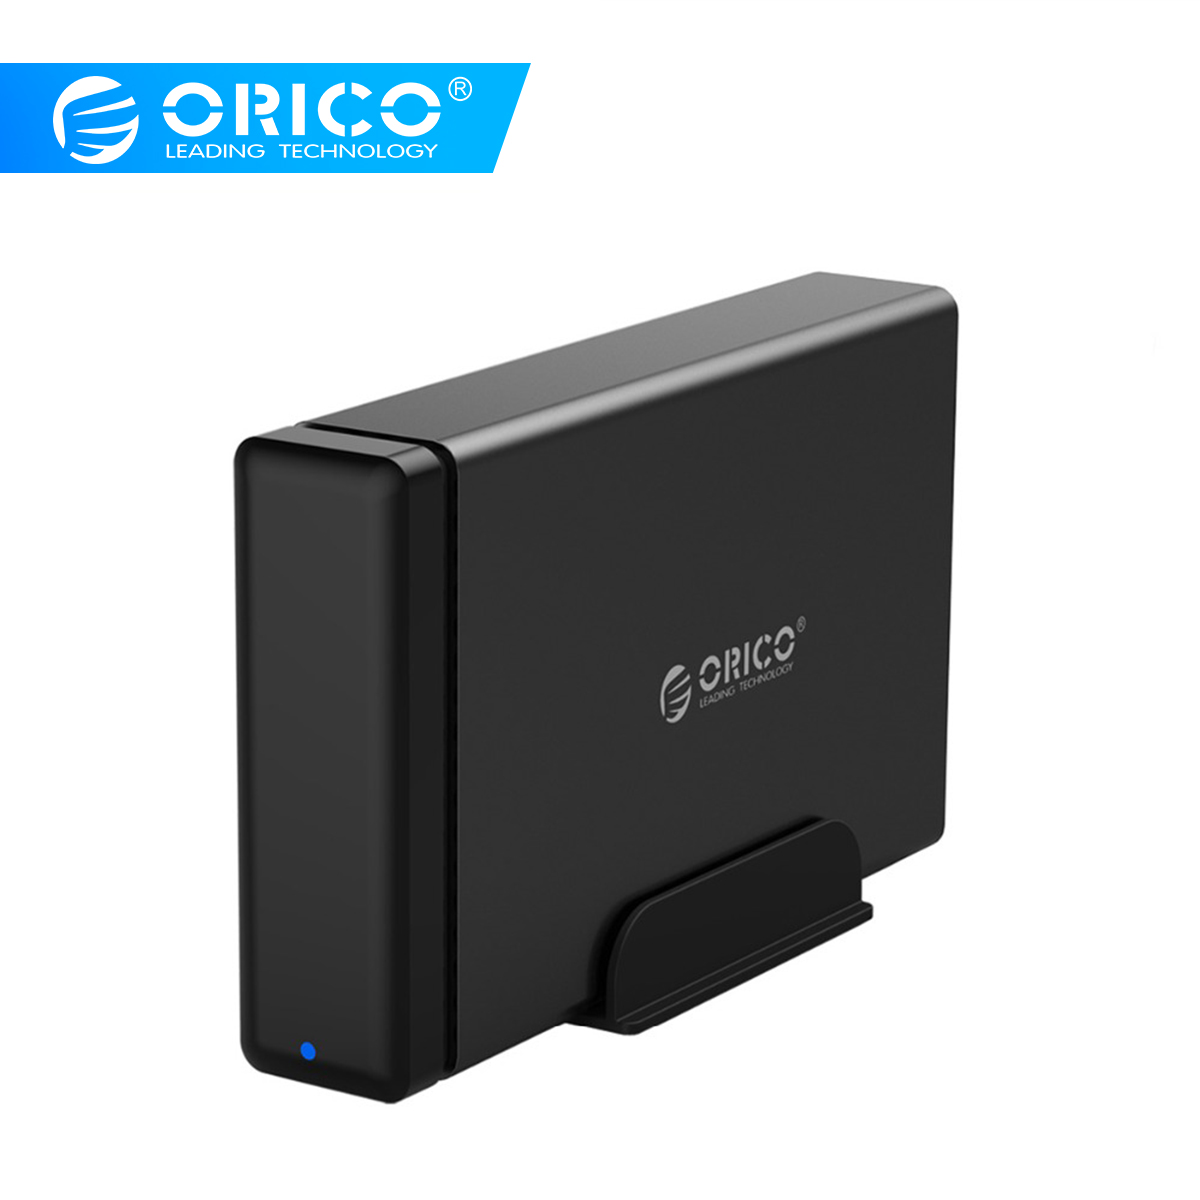 ORICO Aluminum Hard Drive HDD Dock Enclosure USB3.0 To SATA3.0 3.5 Inch HDD Case Support UASP 12V2A Power MAX 10TB Capacity